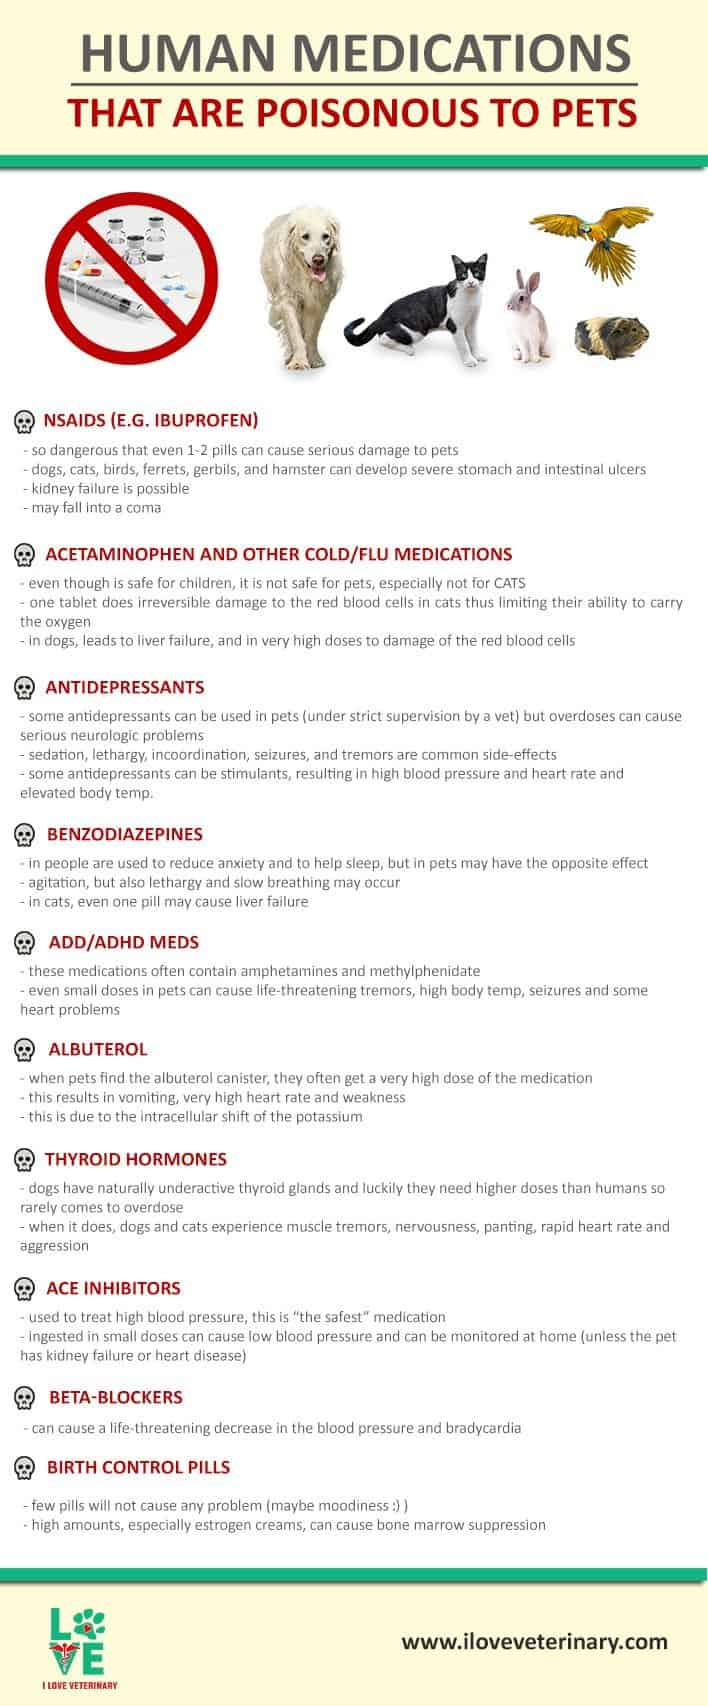 Human Medications that are Poisonous to Pets infographic i love veterinary